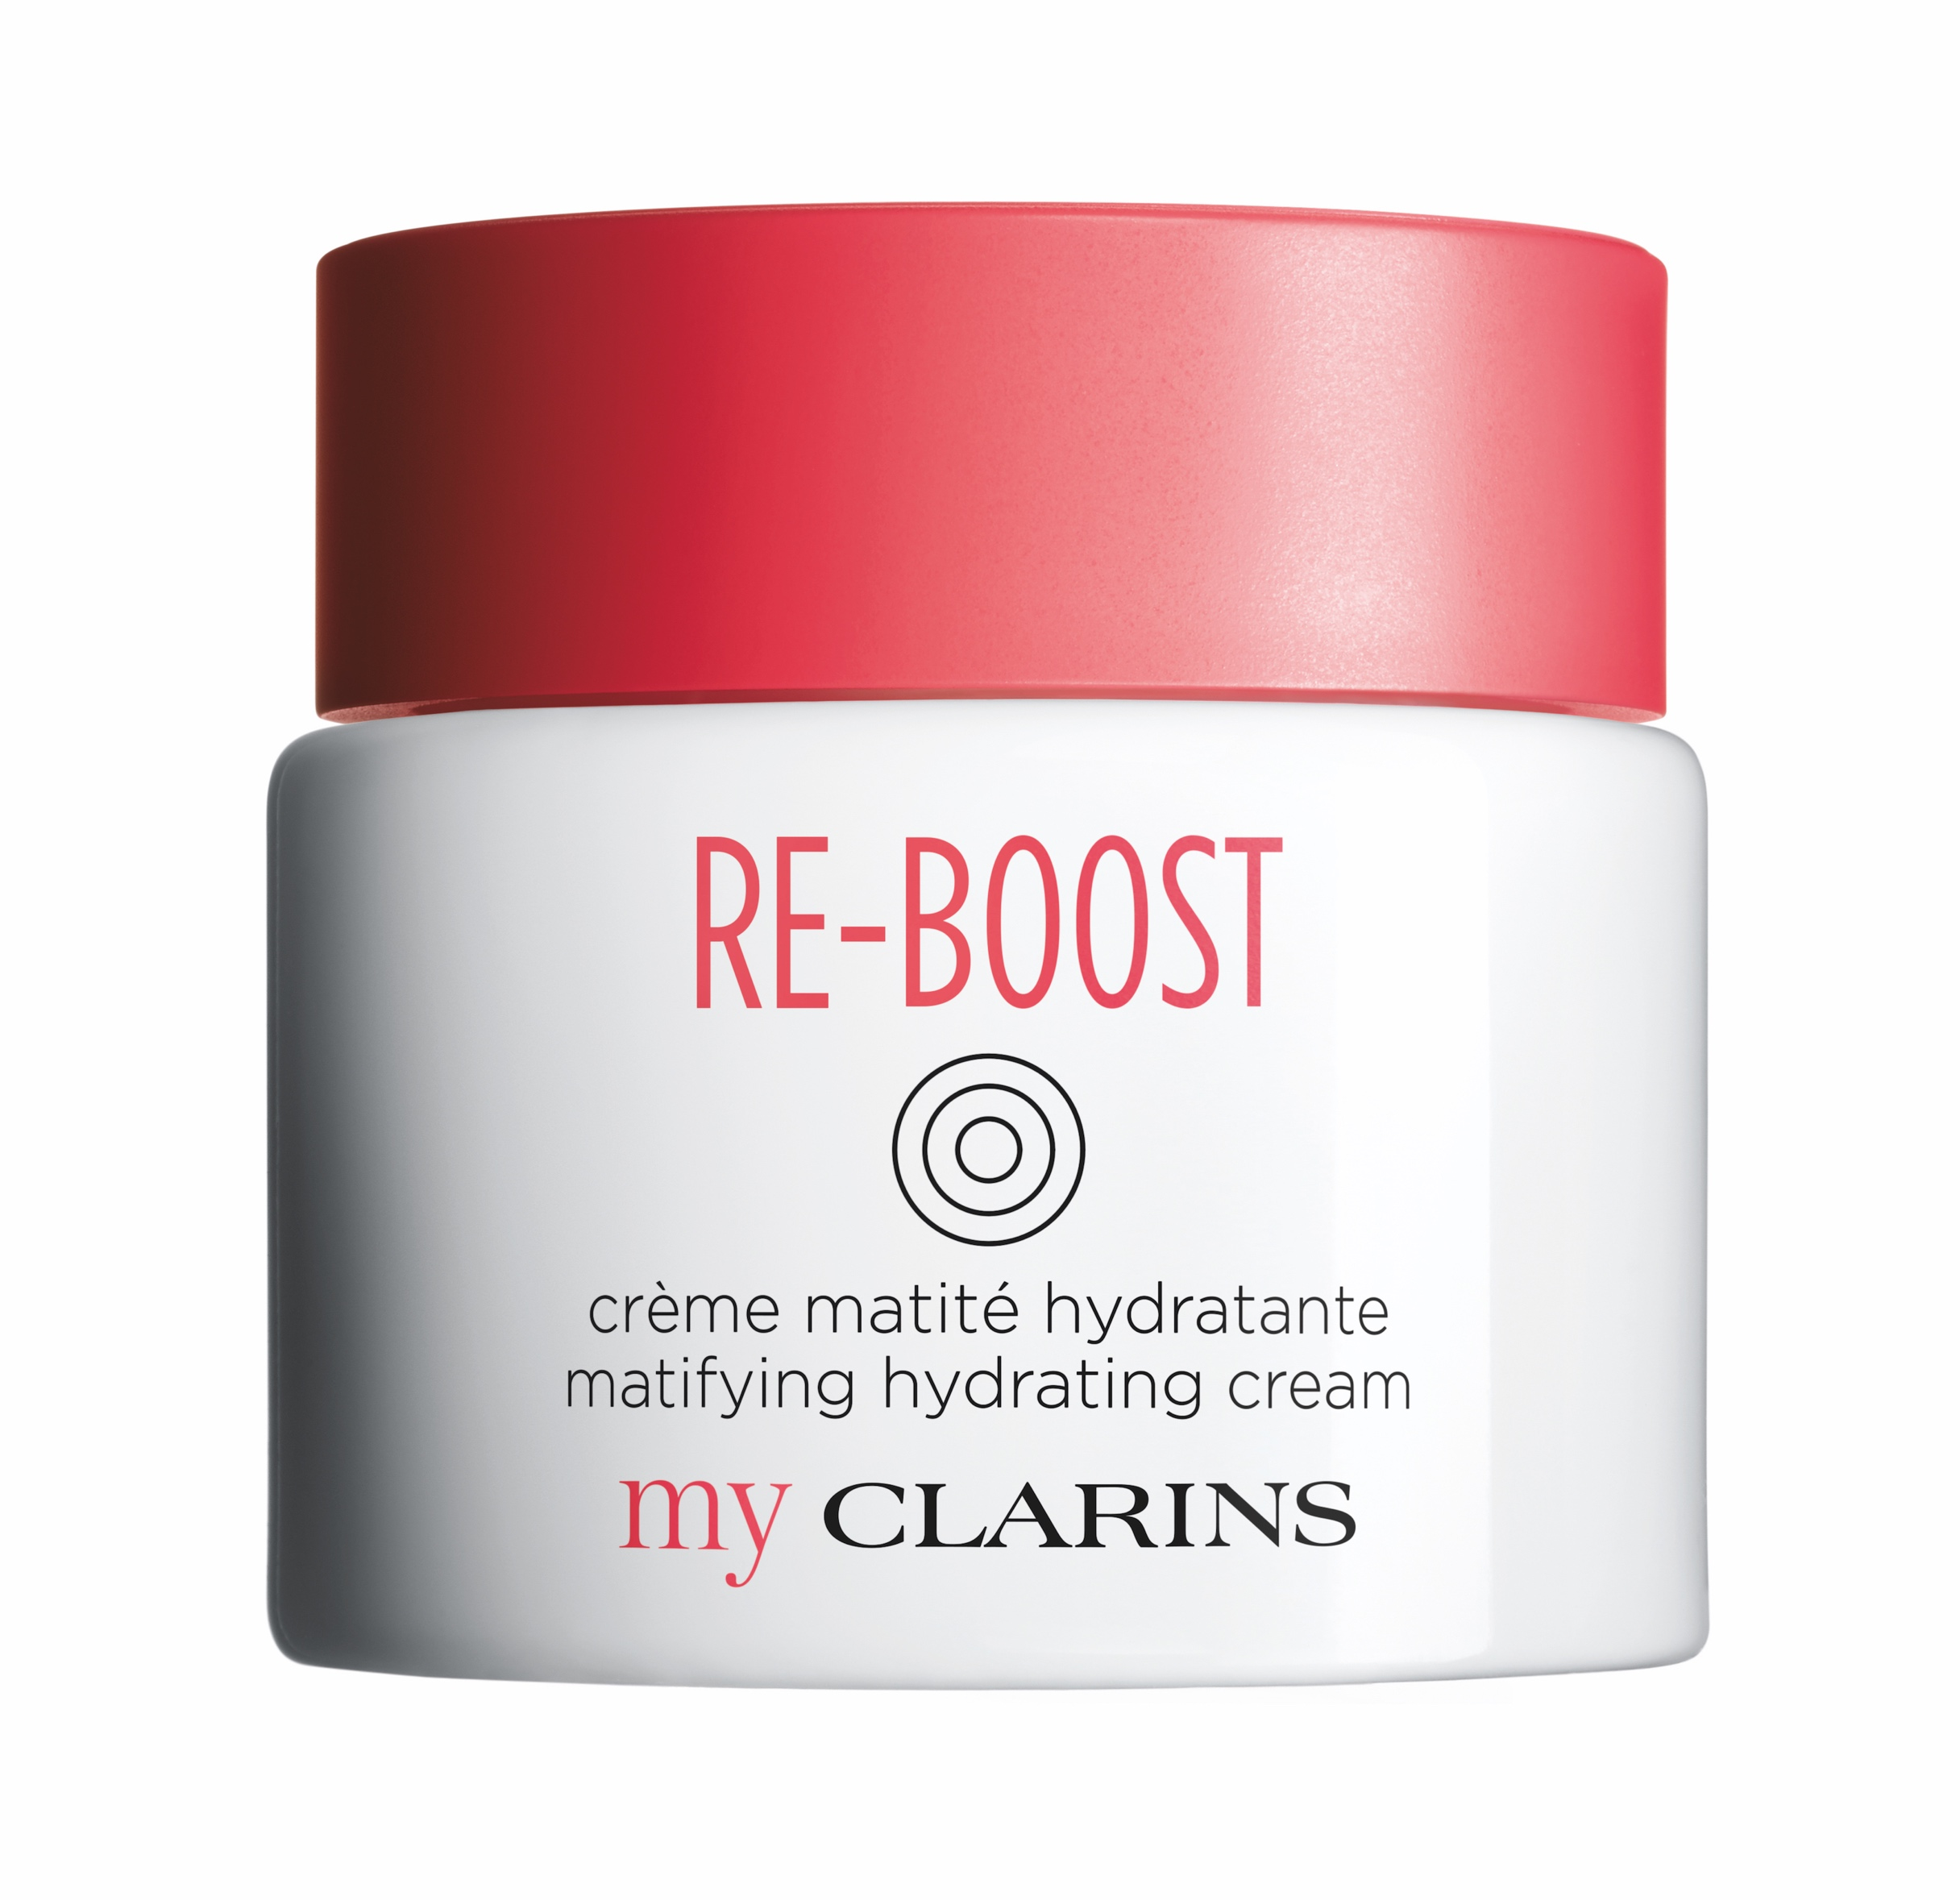 myclarins cream for oily skin